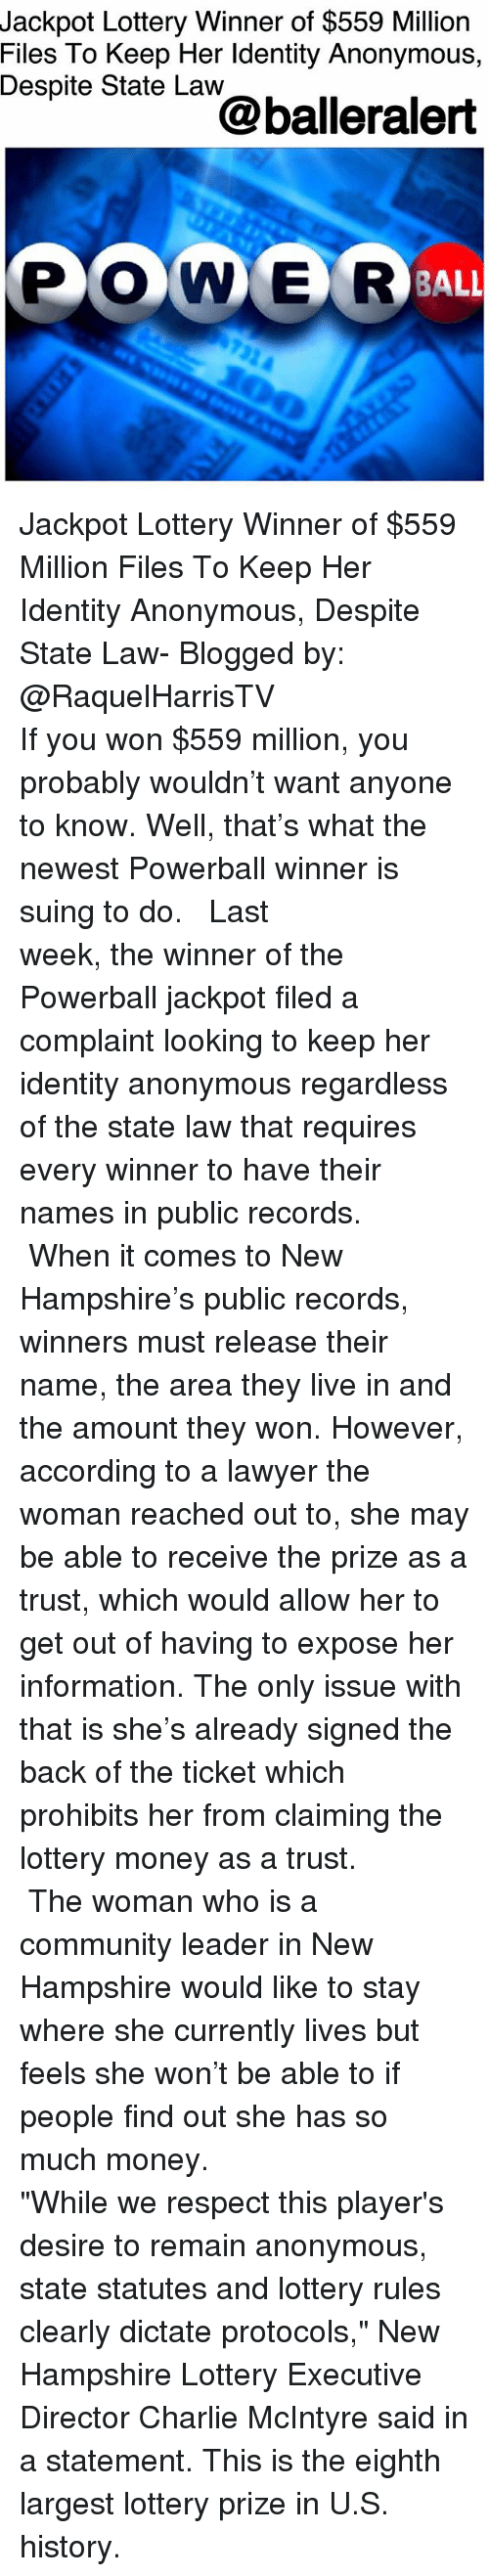 """Charlie, Community, and Lawyer: Jackpot Lottery Winner of $559 Million  Files To Keep Her ldentity Anonymous,  Despite State Law  @balleralert  PONER Jackpot Lottery Winner of $559 Million Files To Keep Her Identity Anonymous, Despite State Law- Blogged by: @RaquelHarrisTV ⠀⠀⠀⠀⠀⠀⠀⠀⠀ ⠀⠀⠀⠀⠀⠀⠀⠀⠀ If you won $559 million, you probably wouldn't want anyone to know. Well, that's what the newest Powerball winner is suing to do. ⠀⠀⠀⠀⠀⠀⠀⠀⠀ ⠀⠀⠀⠀⠀⠀⠀⠀⠀ Last week, the winner of the Powerball jackpot filed a complaint looking to keep her identity anonymous regardless of the state law that requires every winner to have their names in public records. ⠀⠀⠀⠀⠀⠀⠀⠀⠀ ⠀⠀⠀⠀⠀⠀⠀⠀⠀ When it comes to New Hampshire's public records, winners must release their name, the area they live in and the amount they won. However, according to a lawyer the woman reached out to, she may be able to receive the prize as a trust, which would allow her to get out of having to expose her information. The only issue with that is she's already signed the back of the ticket which prohibits her from claiming the lottery money as a trust. ⠀⠀⠀⠀⠀⠀⠀⠀⠀ ⠀⠀⠀⠀⠀⠀⠀⠀⠀ The woman who is a community leader in New Hampshire would like to stay where she currently lives but feels she won't be able to if people find out she has so much money. ⠀⠀⠀⠀⠀⠀⠀⠀⠀ ⠀⠀⠀⠀⠀⠀⠀⠀⠀ """"While we respect this player's desire to remain anonymous, state statutes and lottery rules clearly dictate protocols,"""" New Hampshire Lottery Executive Director Charlie McIntyre said in a statement. This is the eighth largest lottery prize in U.S. history."""